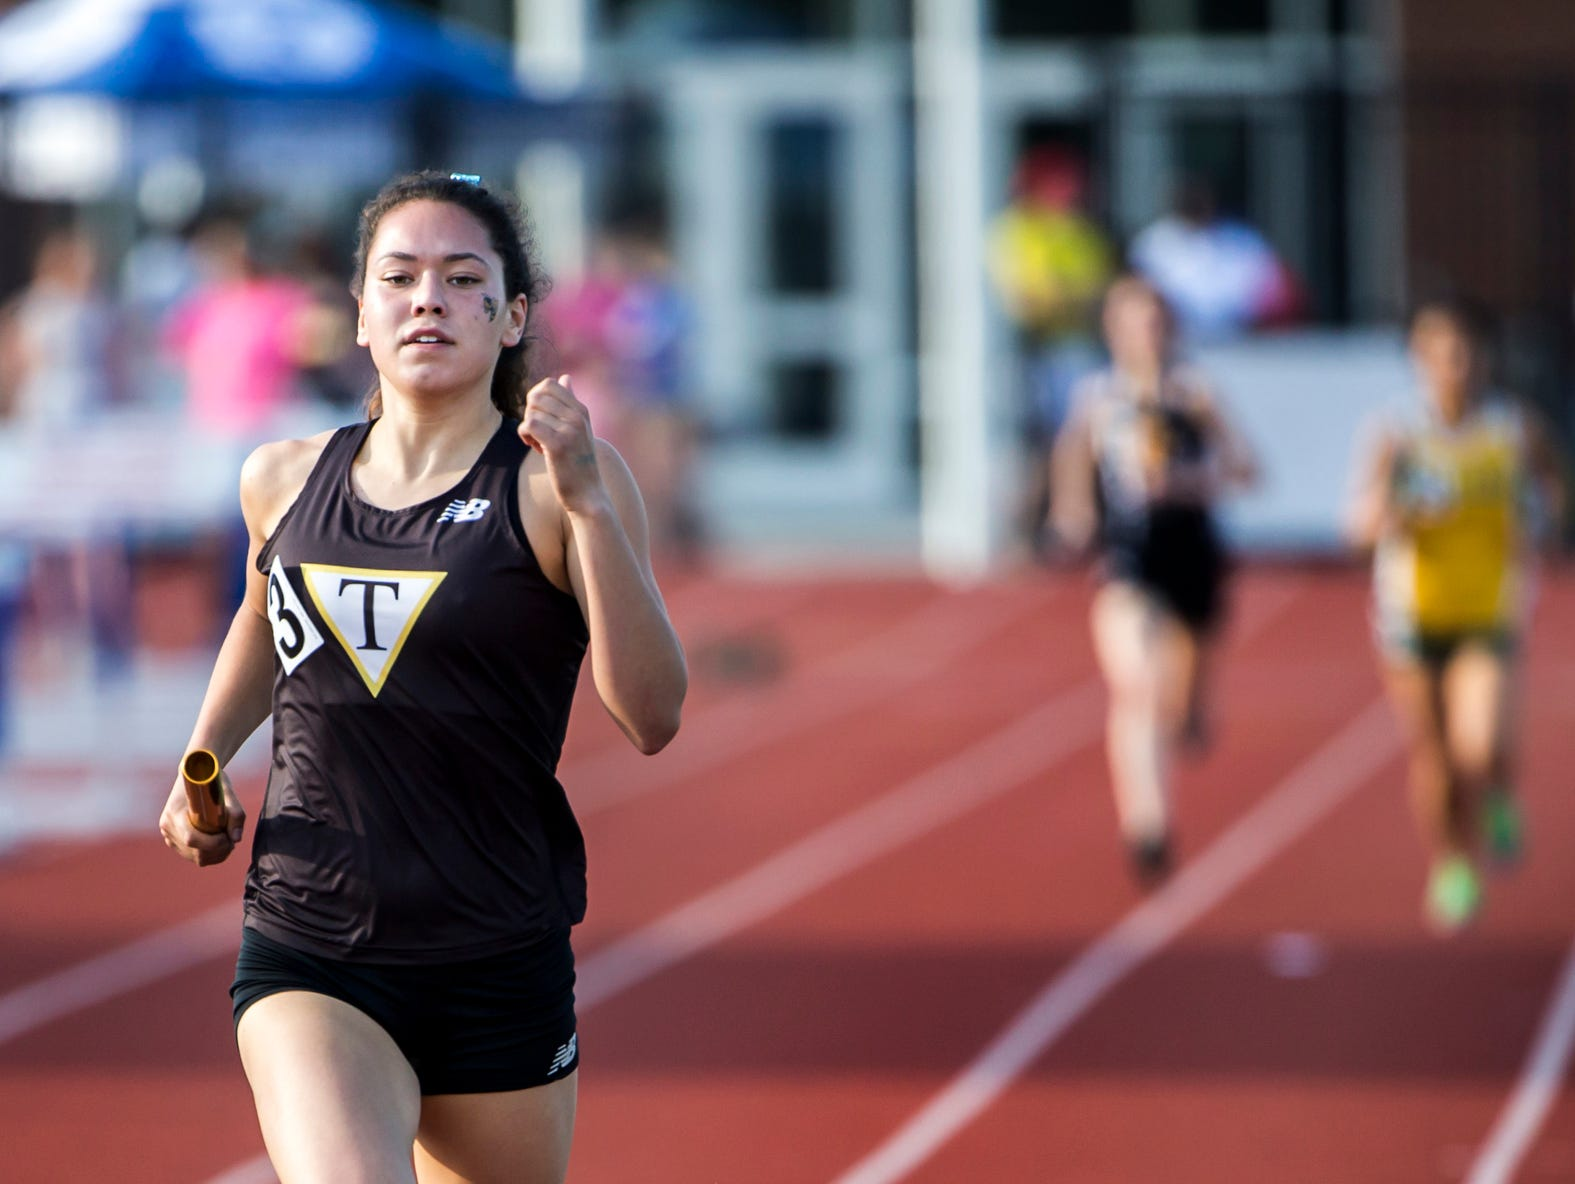 Tatnall's Savannah Pankow anchors her team to a win in the Girls 4x800 Meter Relay event at the Meet of Champions at Dover High School on Wednesday evening.